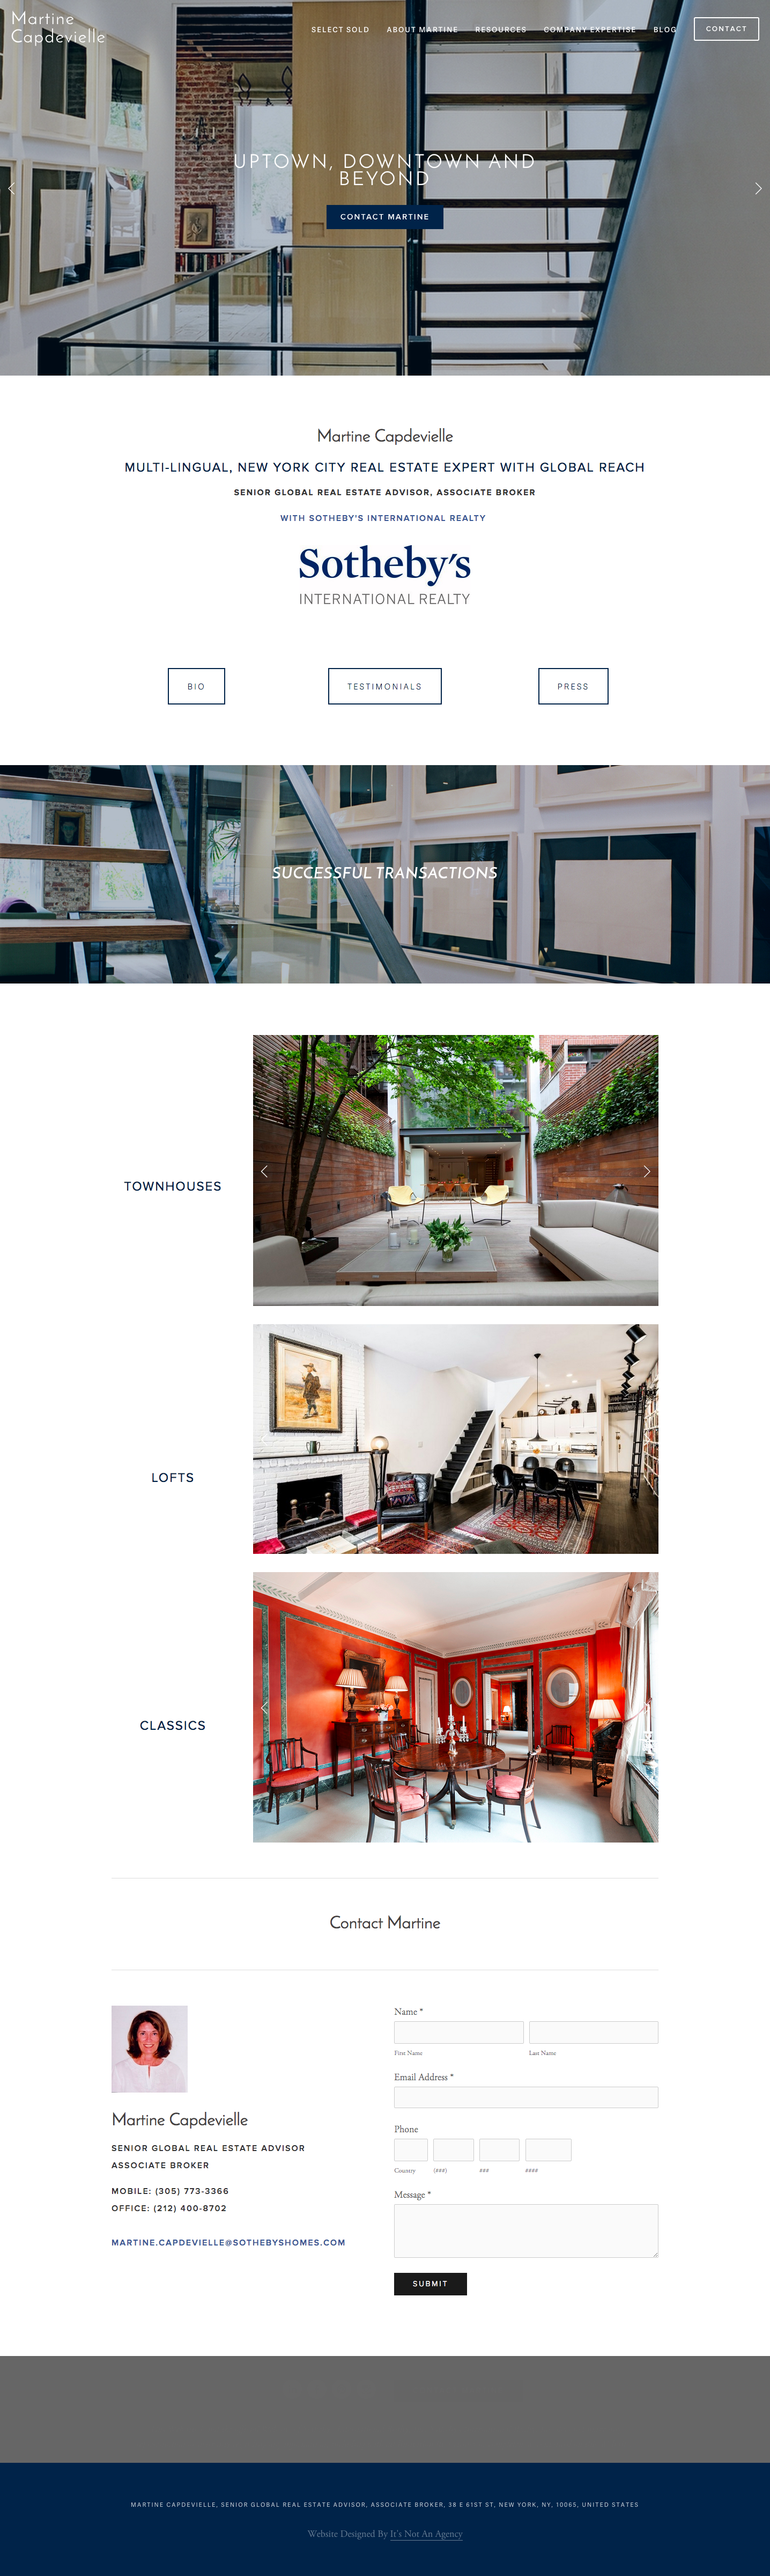 Real Estate Website_Martine Capdevielle1.png